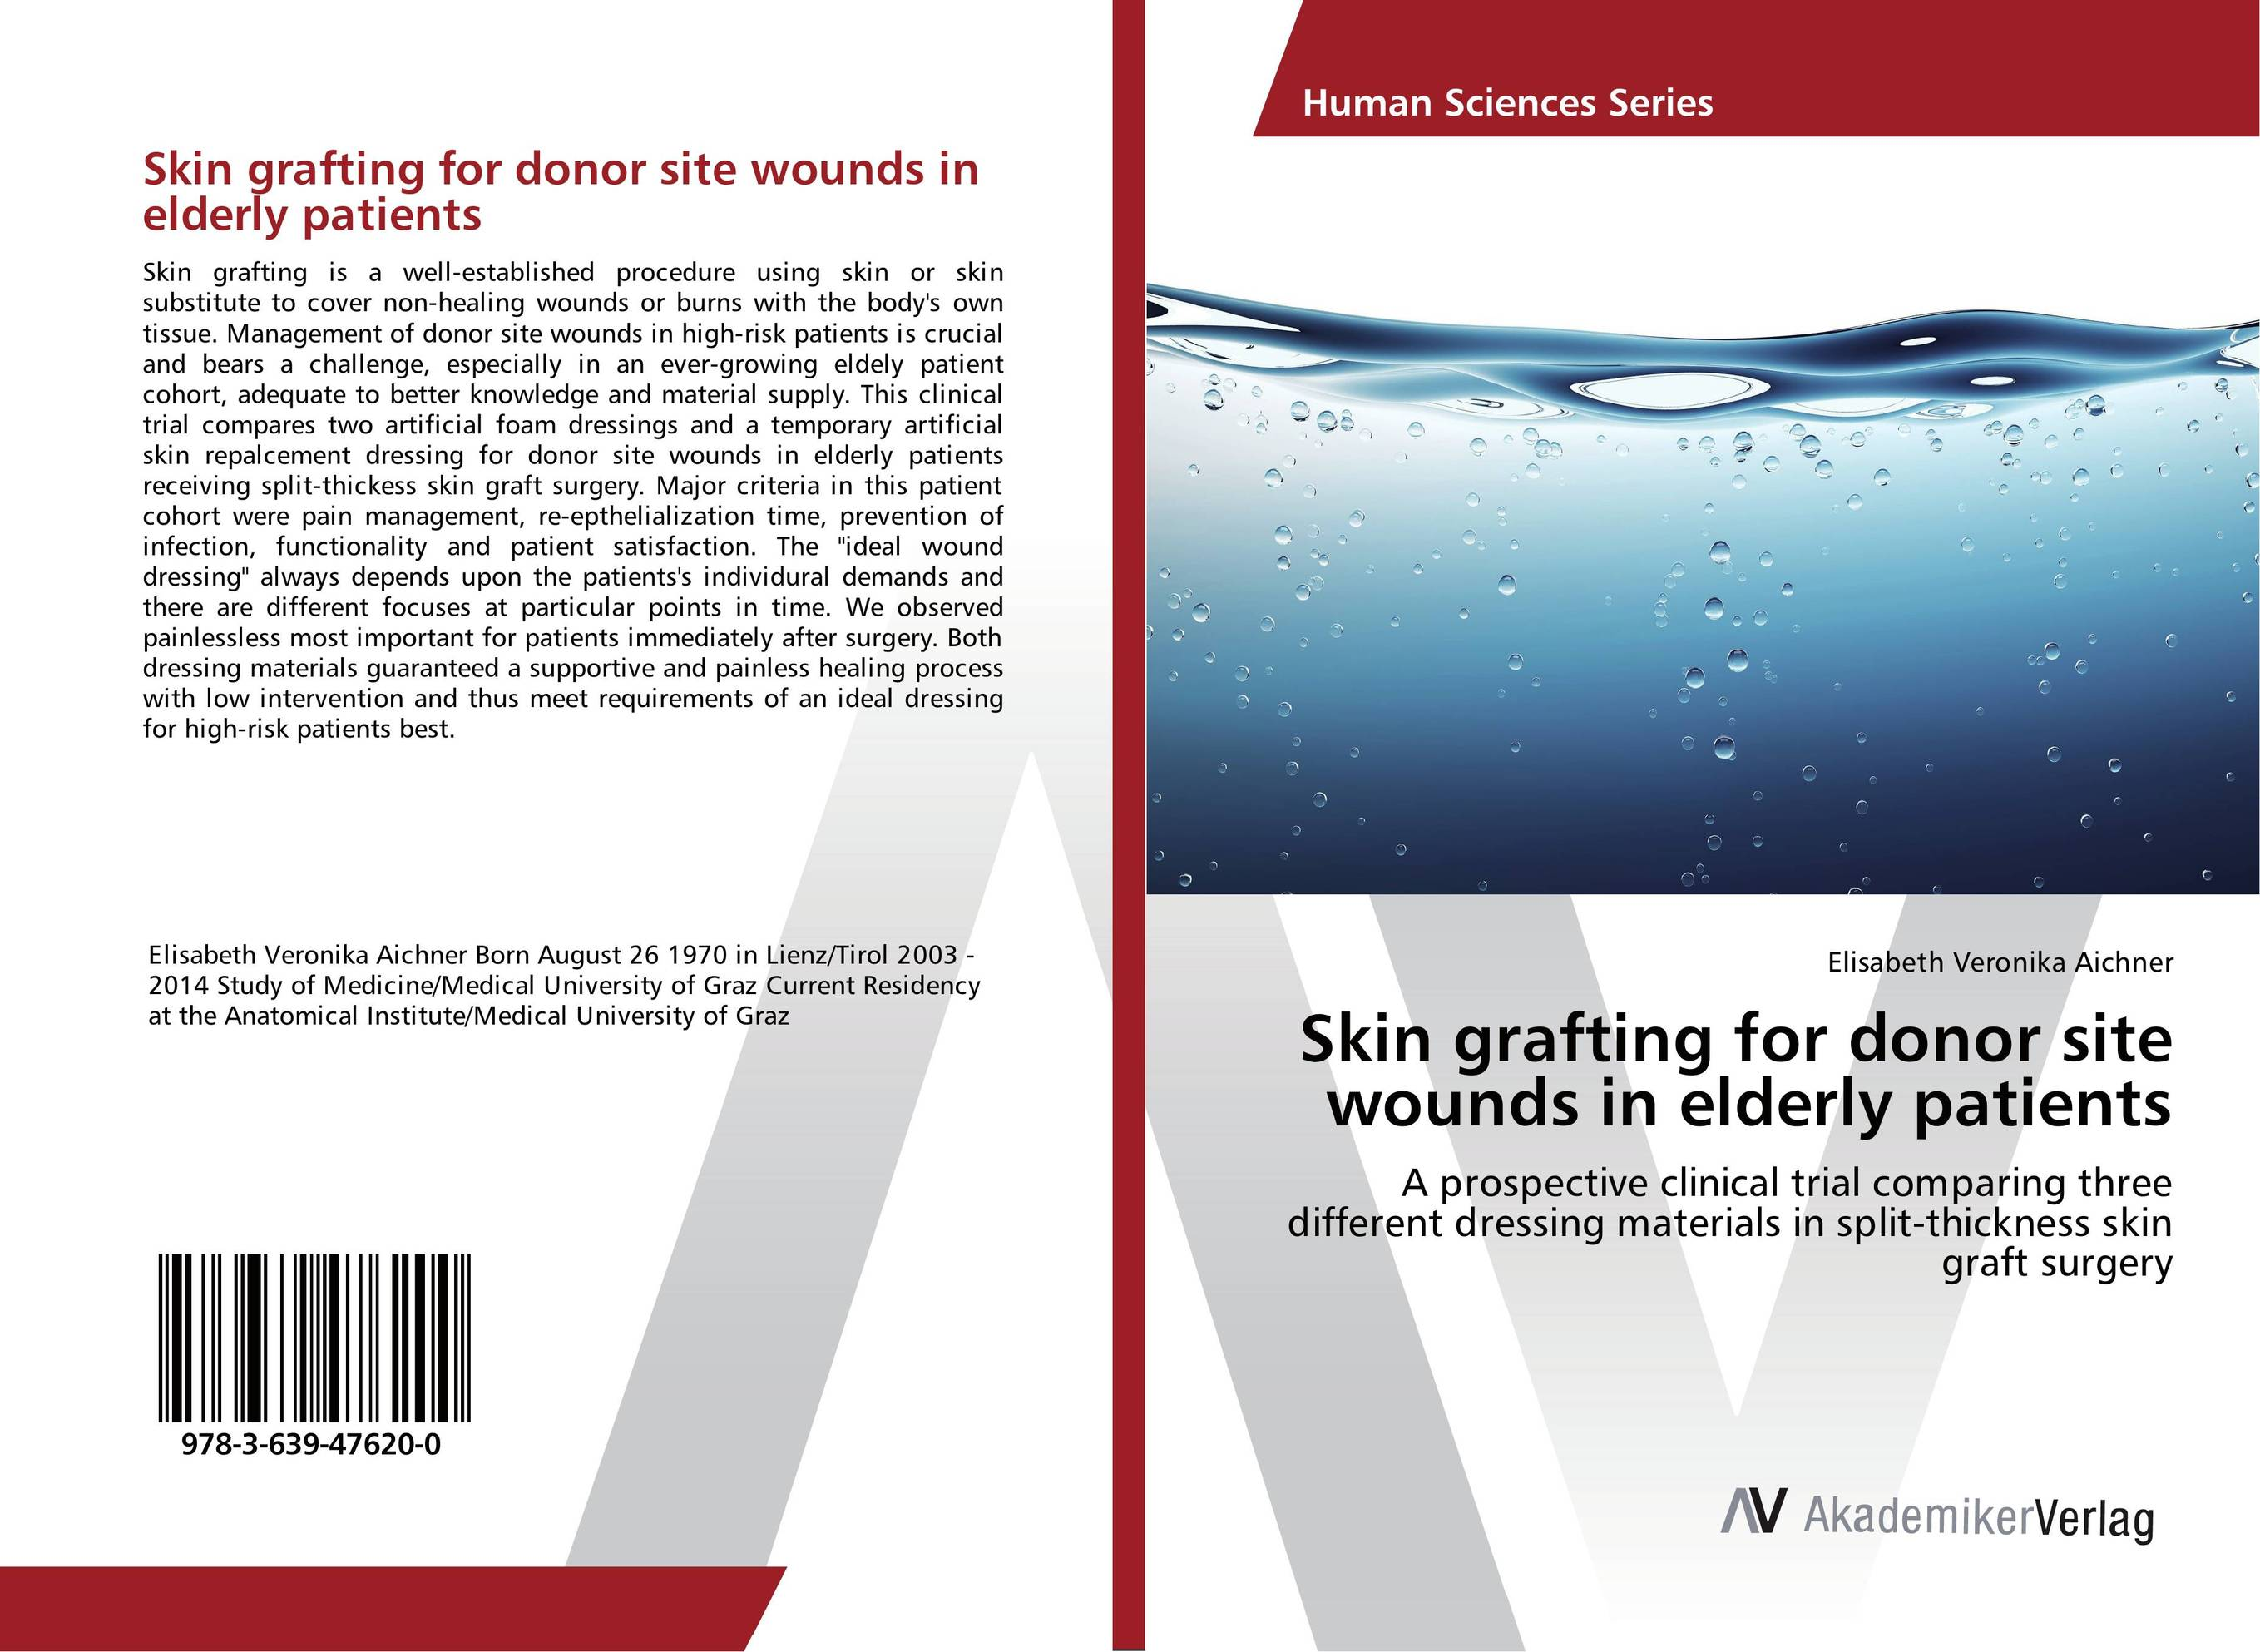 Skin grafting for donor site wounds in elderly patients fibular grafting in femoral neck fractures with posterior comminution